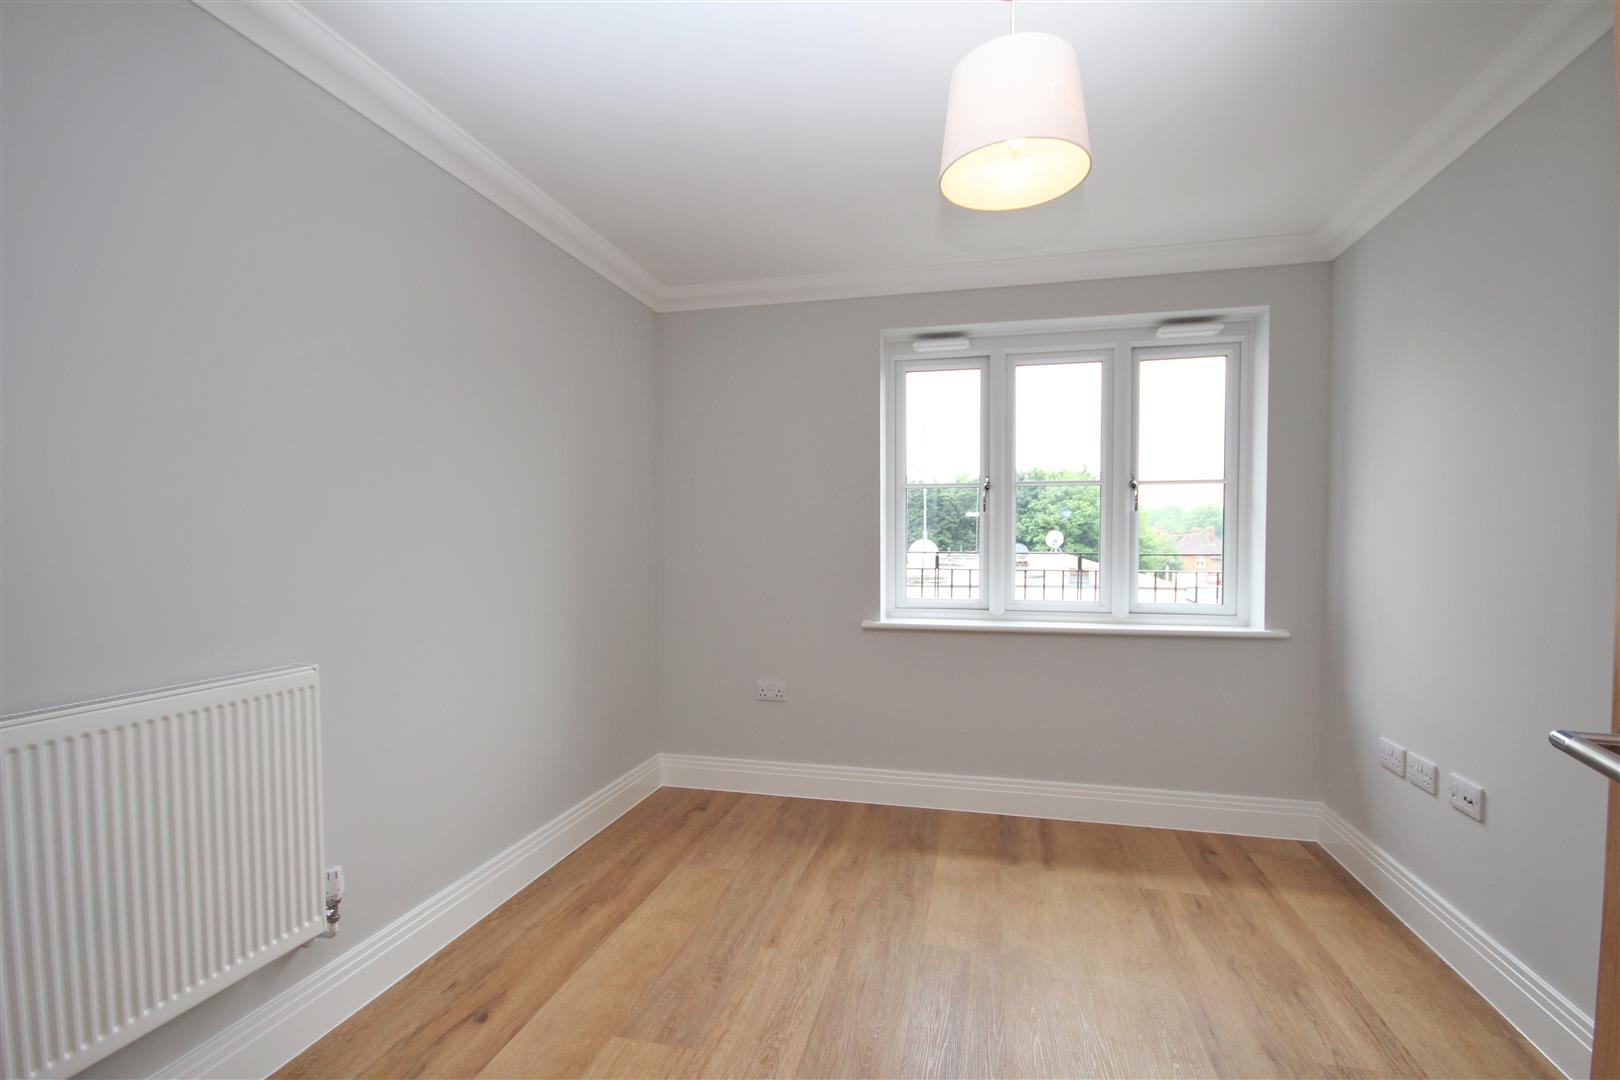 2 bed Flat to rent - (Property Image 10)